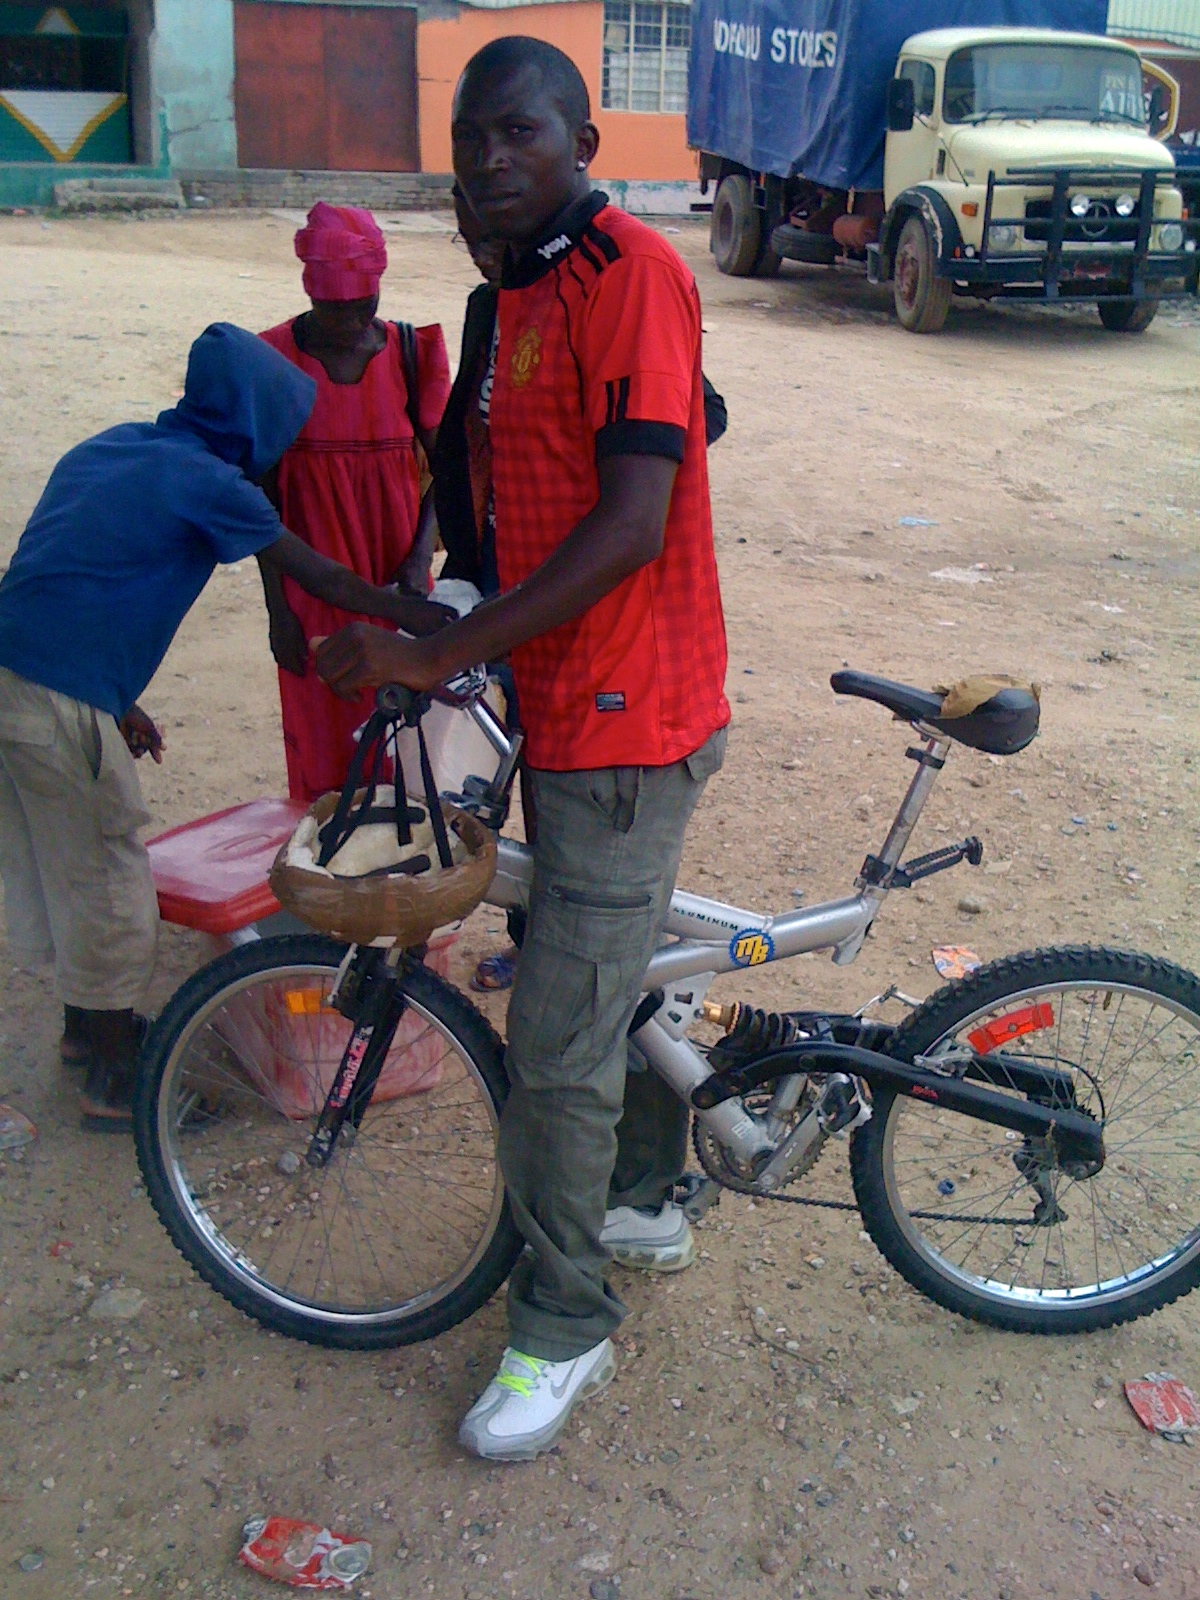 At the market in town, Paul just happened to find this guy on a bike with an MB sticker on it. So cool!